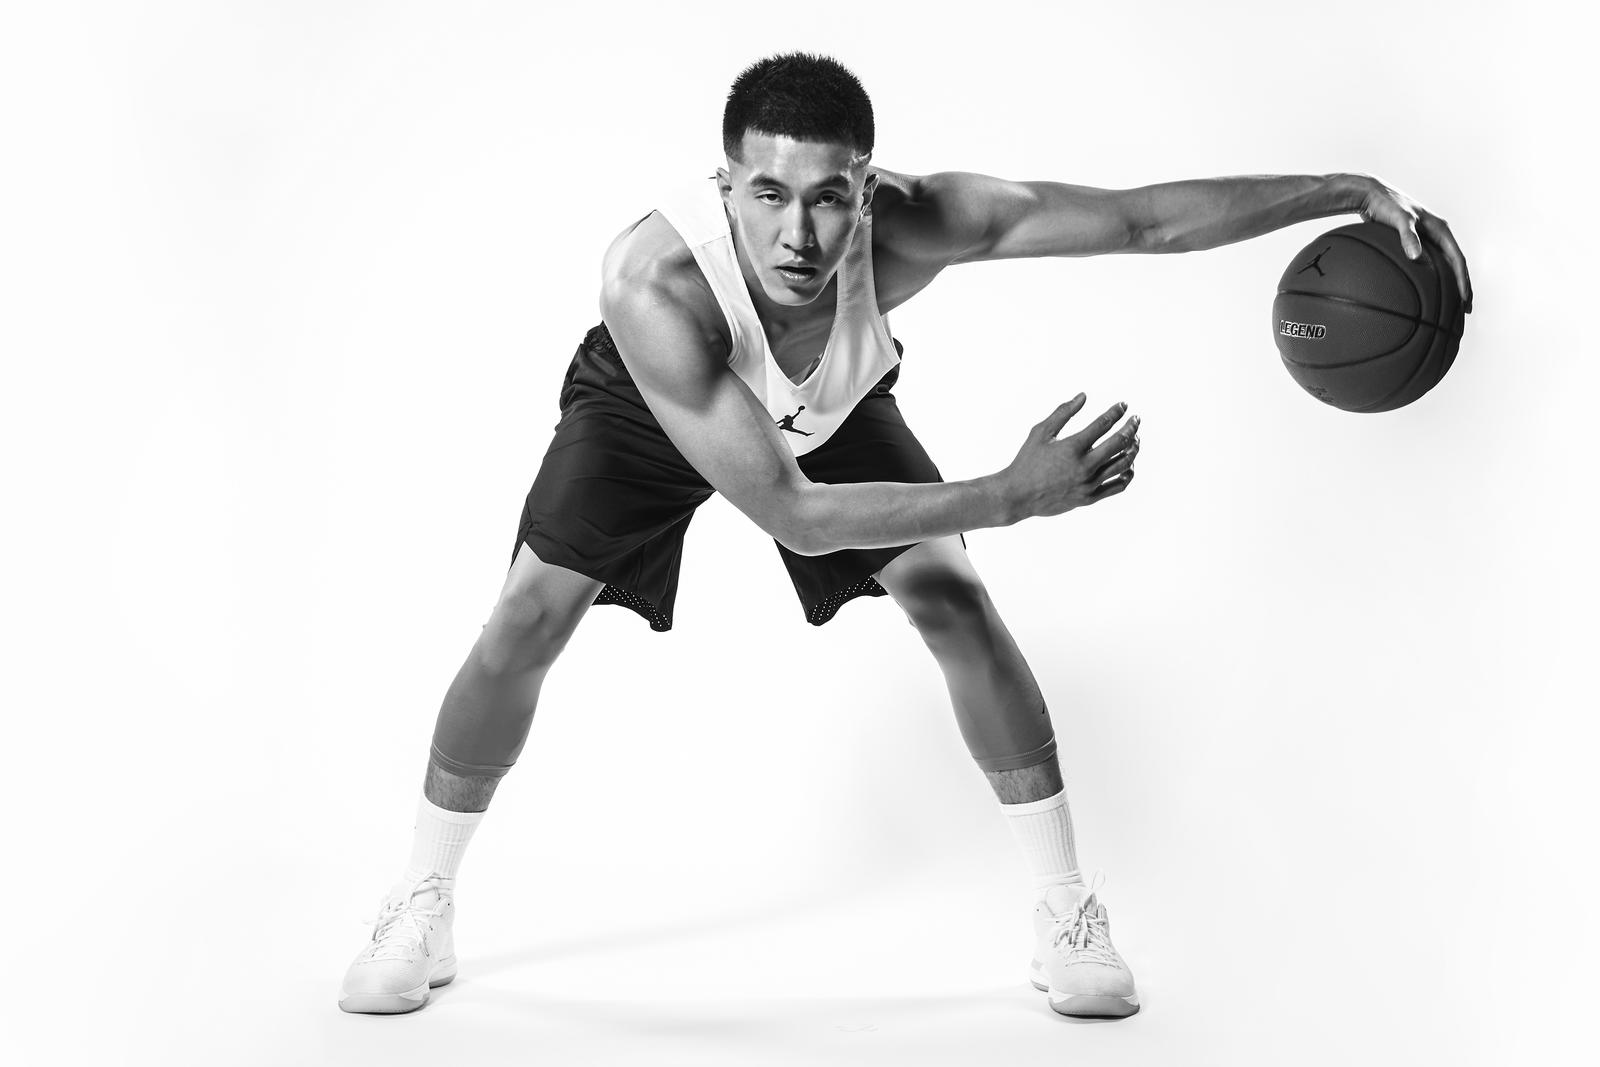 77a8a6628ac71b Jordan Brand Welcomes Chinese Basketball Star Guo Ailun to the Family 1